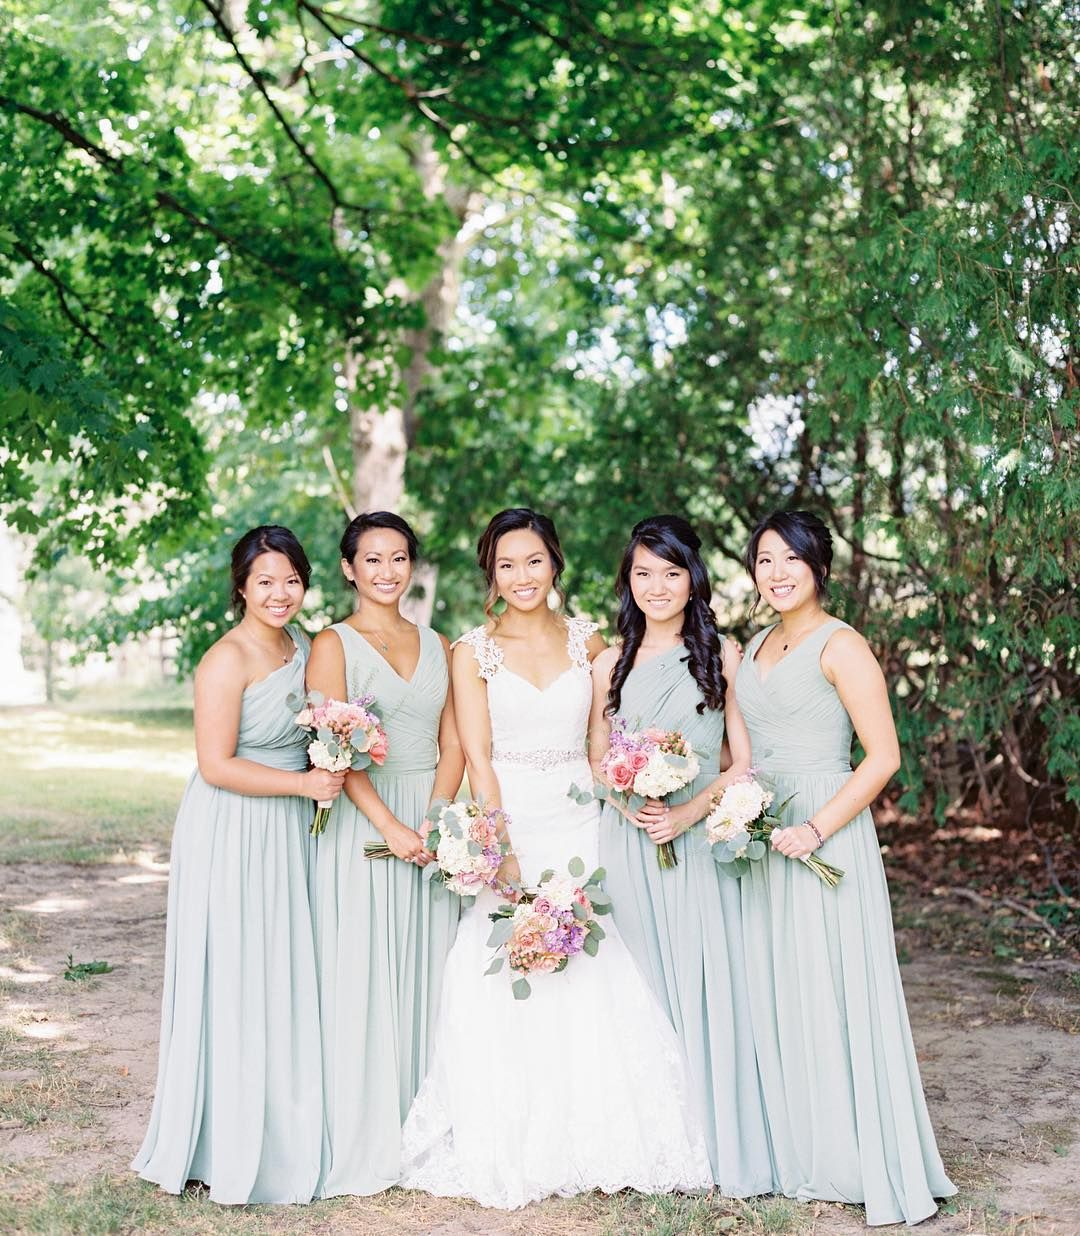 Davids bridal bridesmaids in coordinating bridesmaid dresses davids bridal bridesmaids in coordinating bridesmaid dresses long one shoulder chiffon dress style f18055 and ombrellifo Image collections